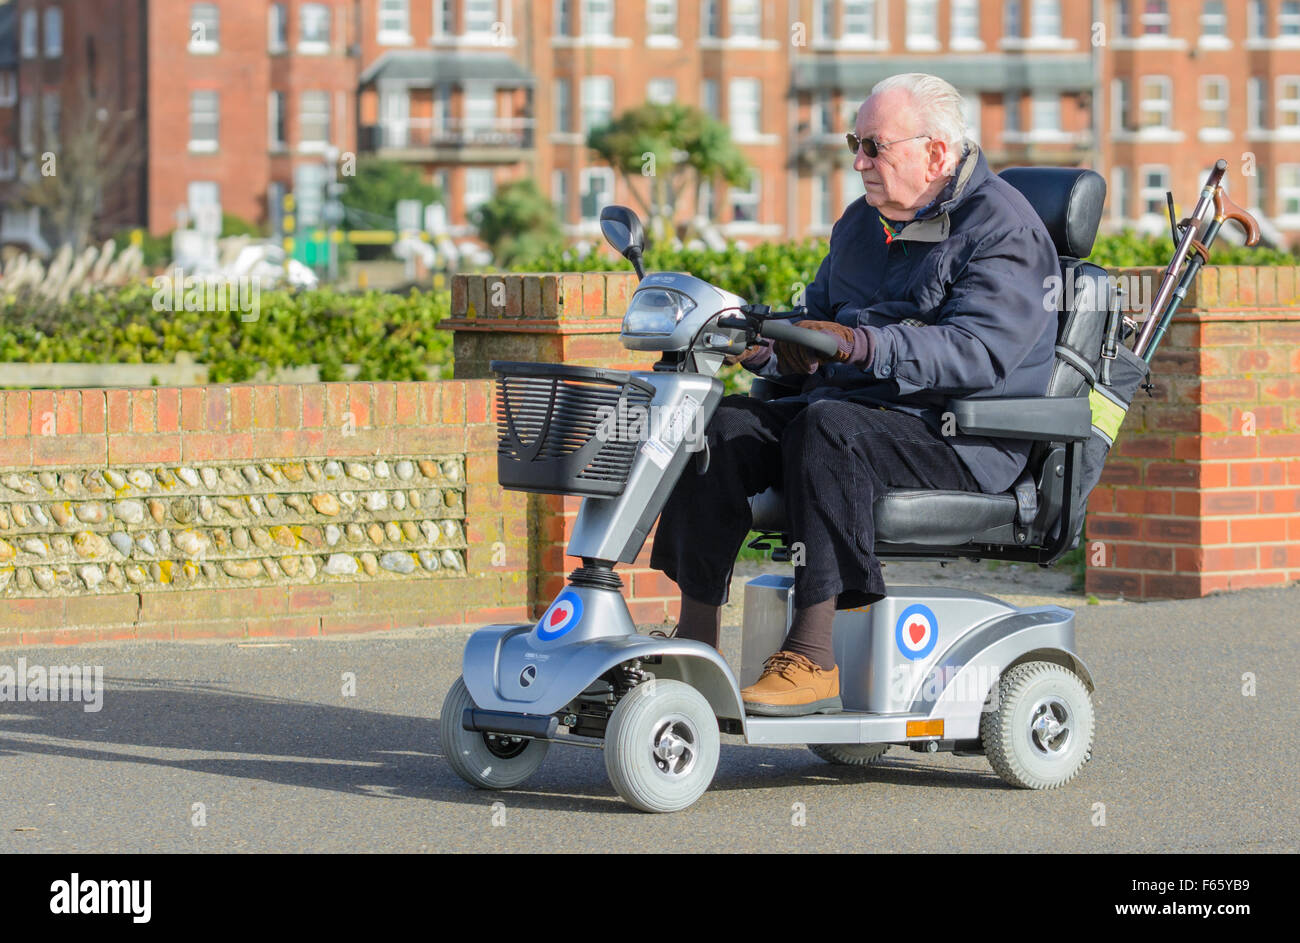 Mobility scooter ridden by an elderly man. - Stock Image